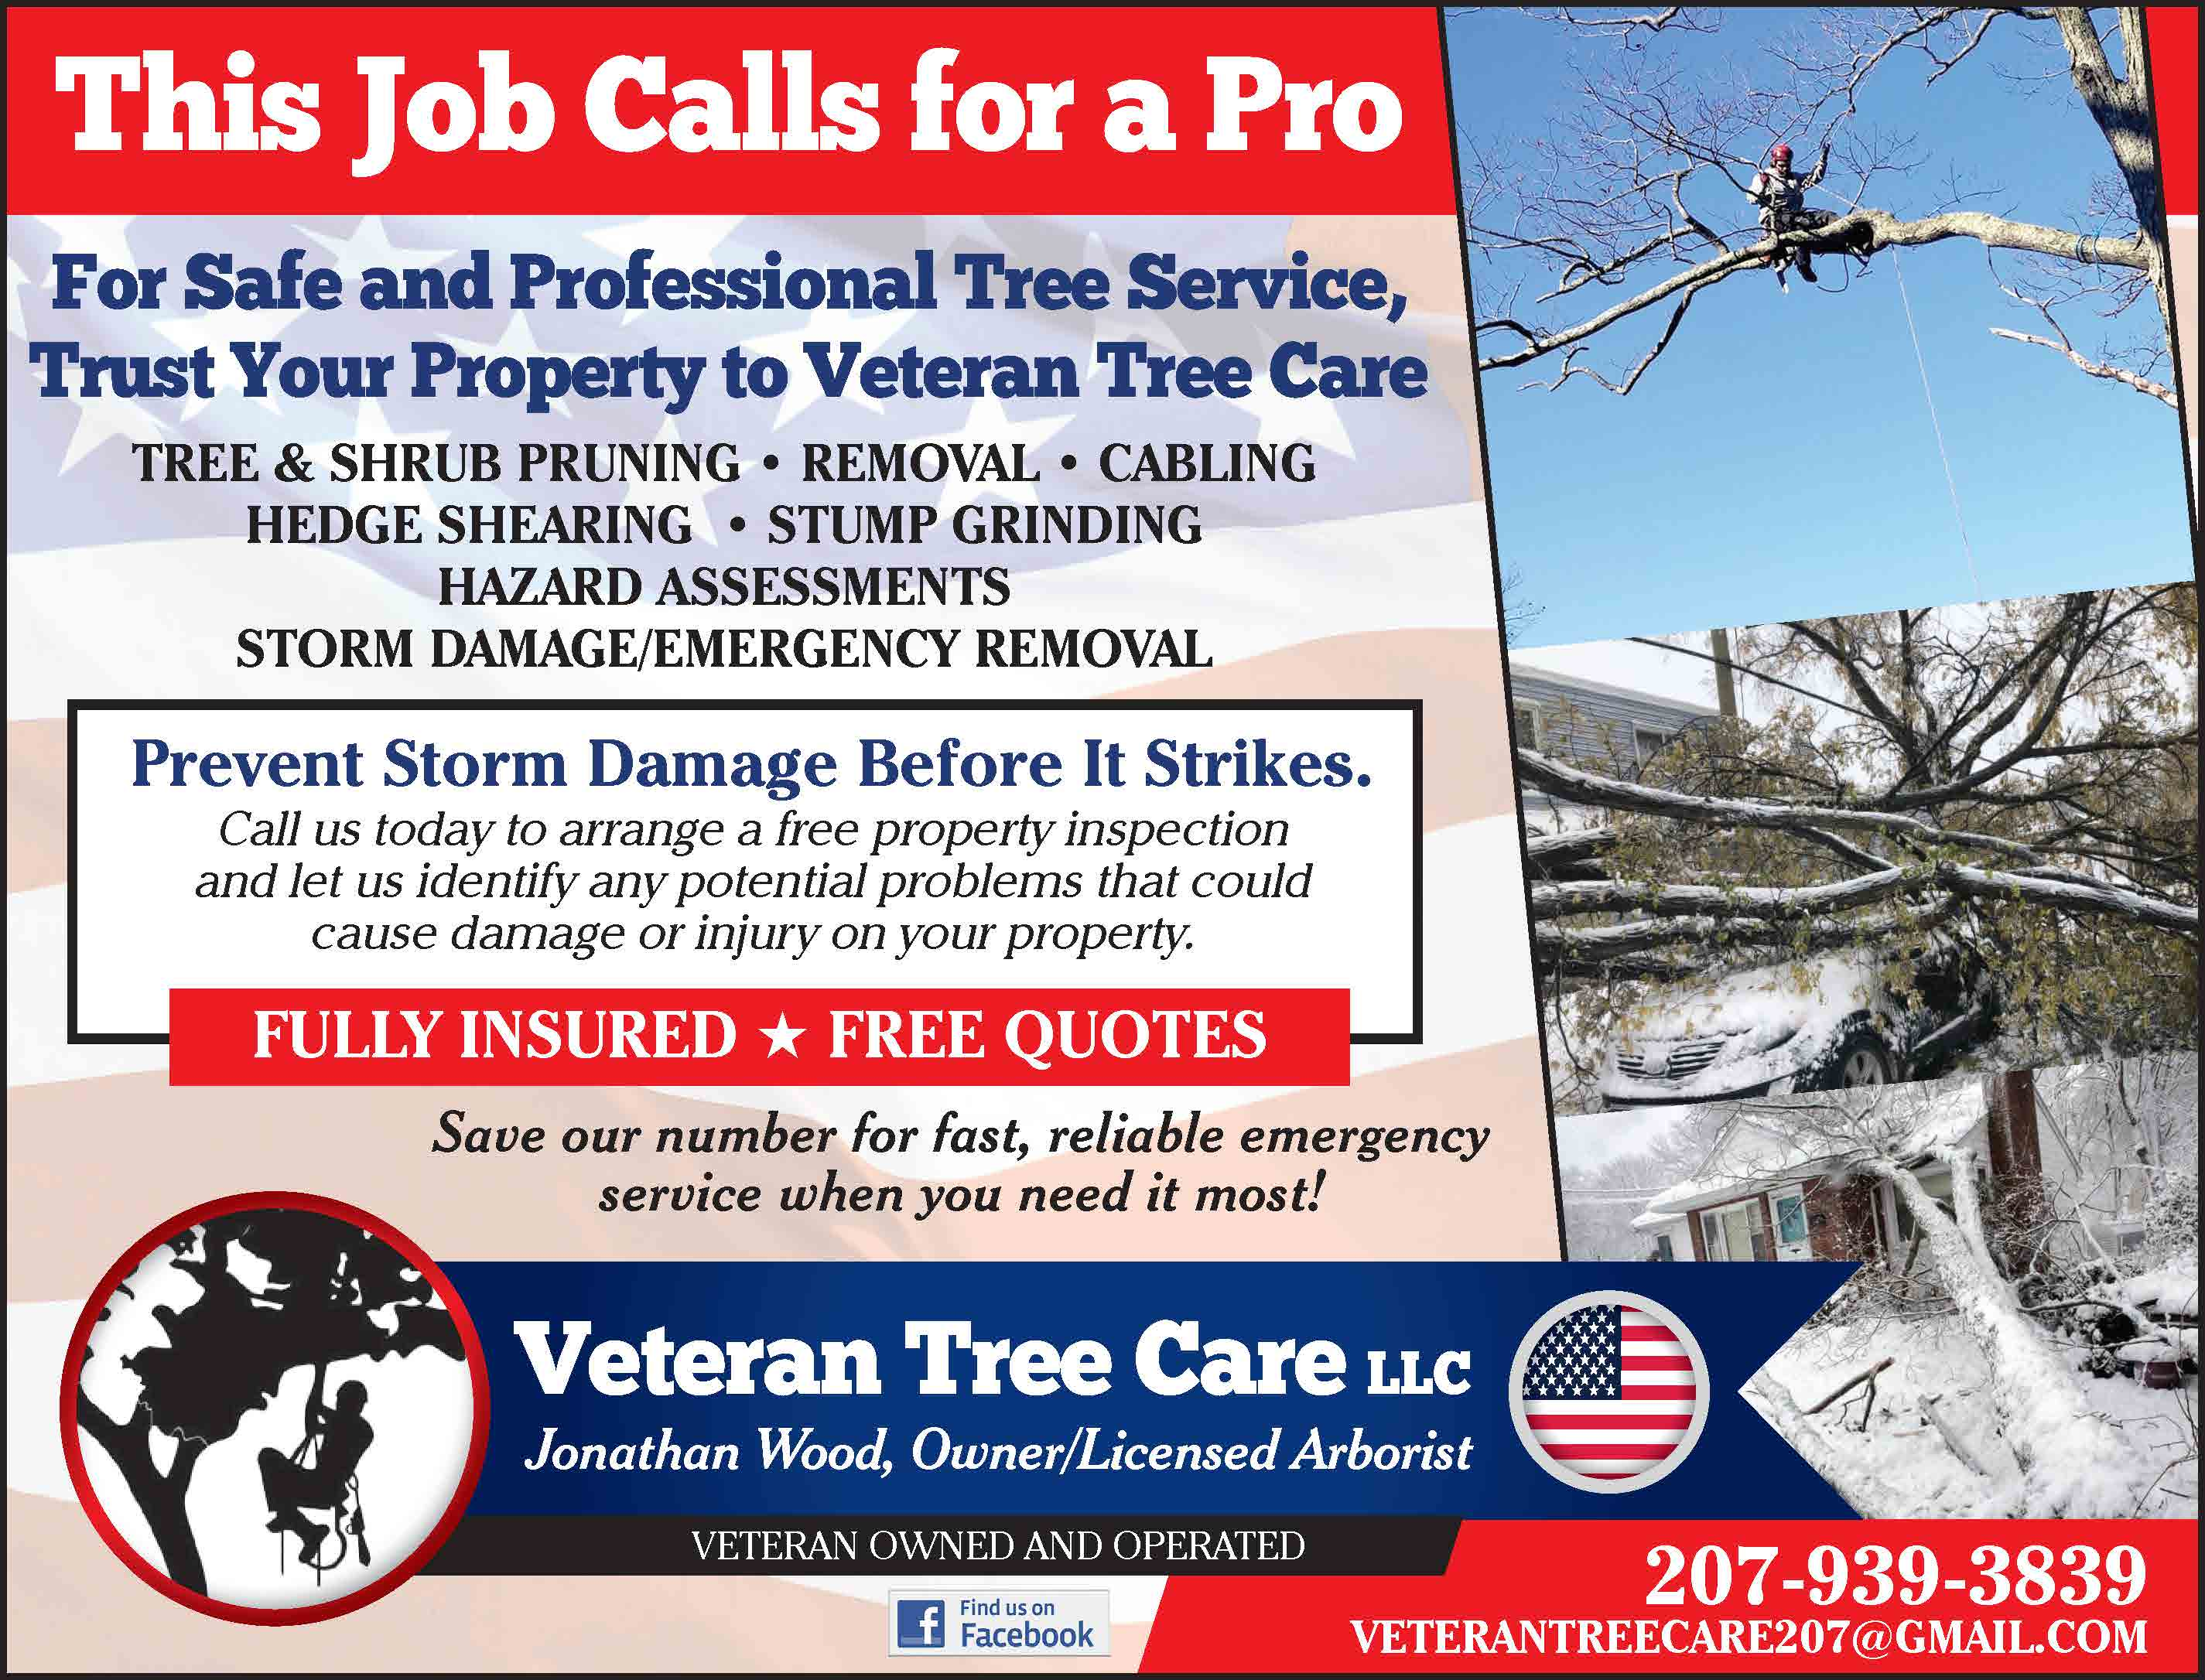 https://www.facebook.com/Veteran-Tree-Care-LLC-589902008168367/